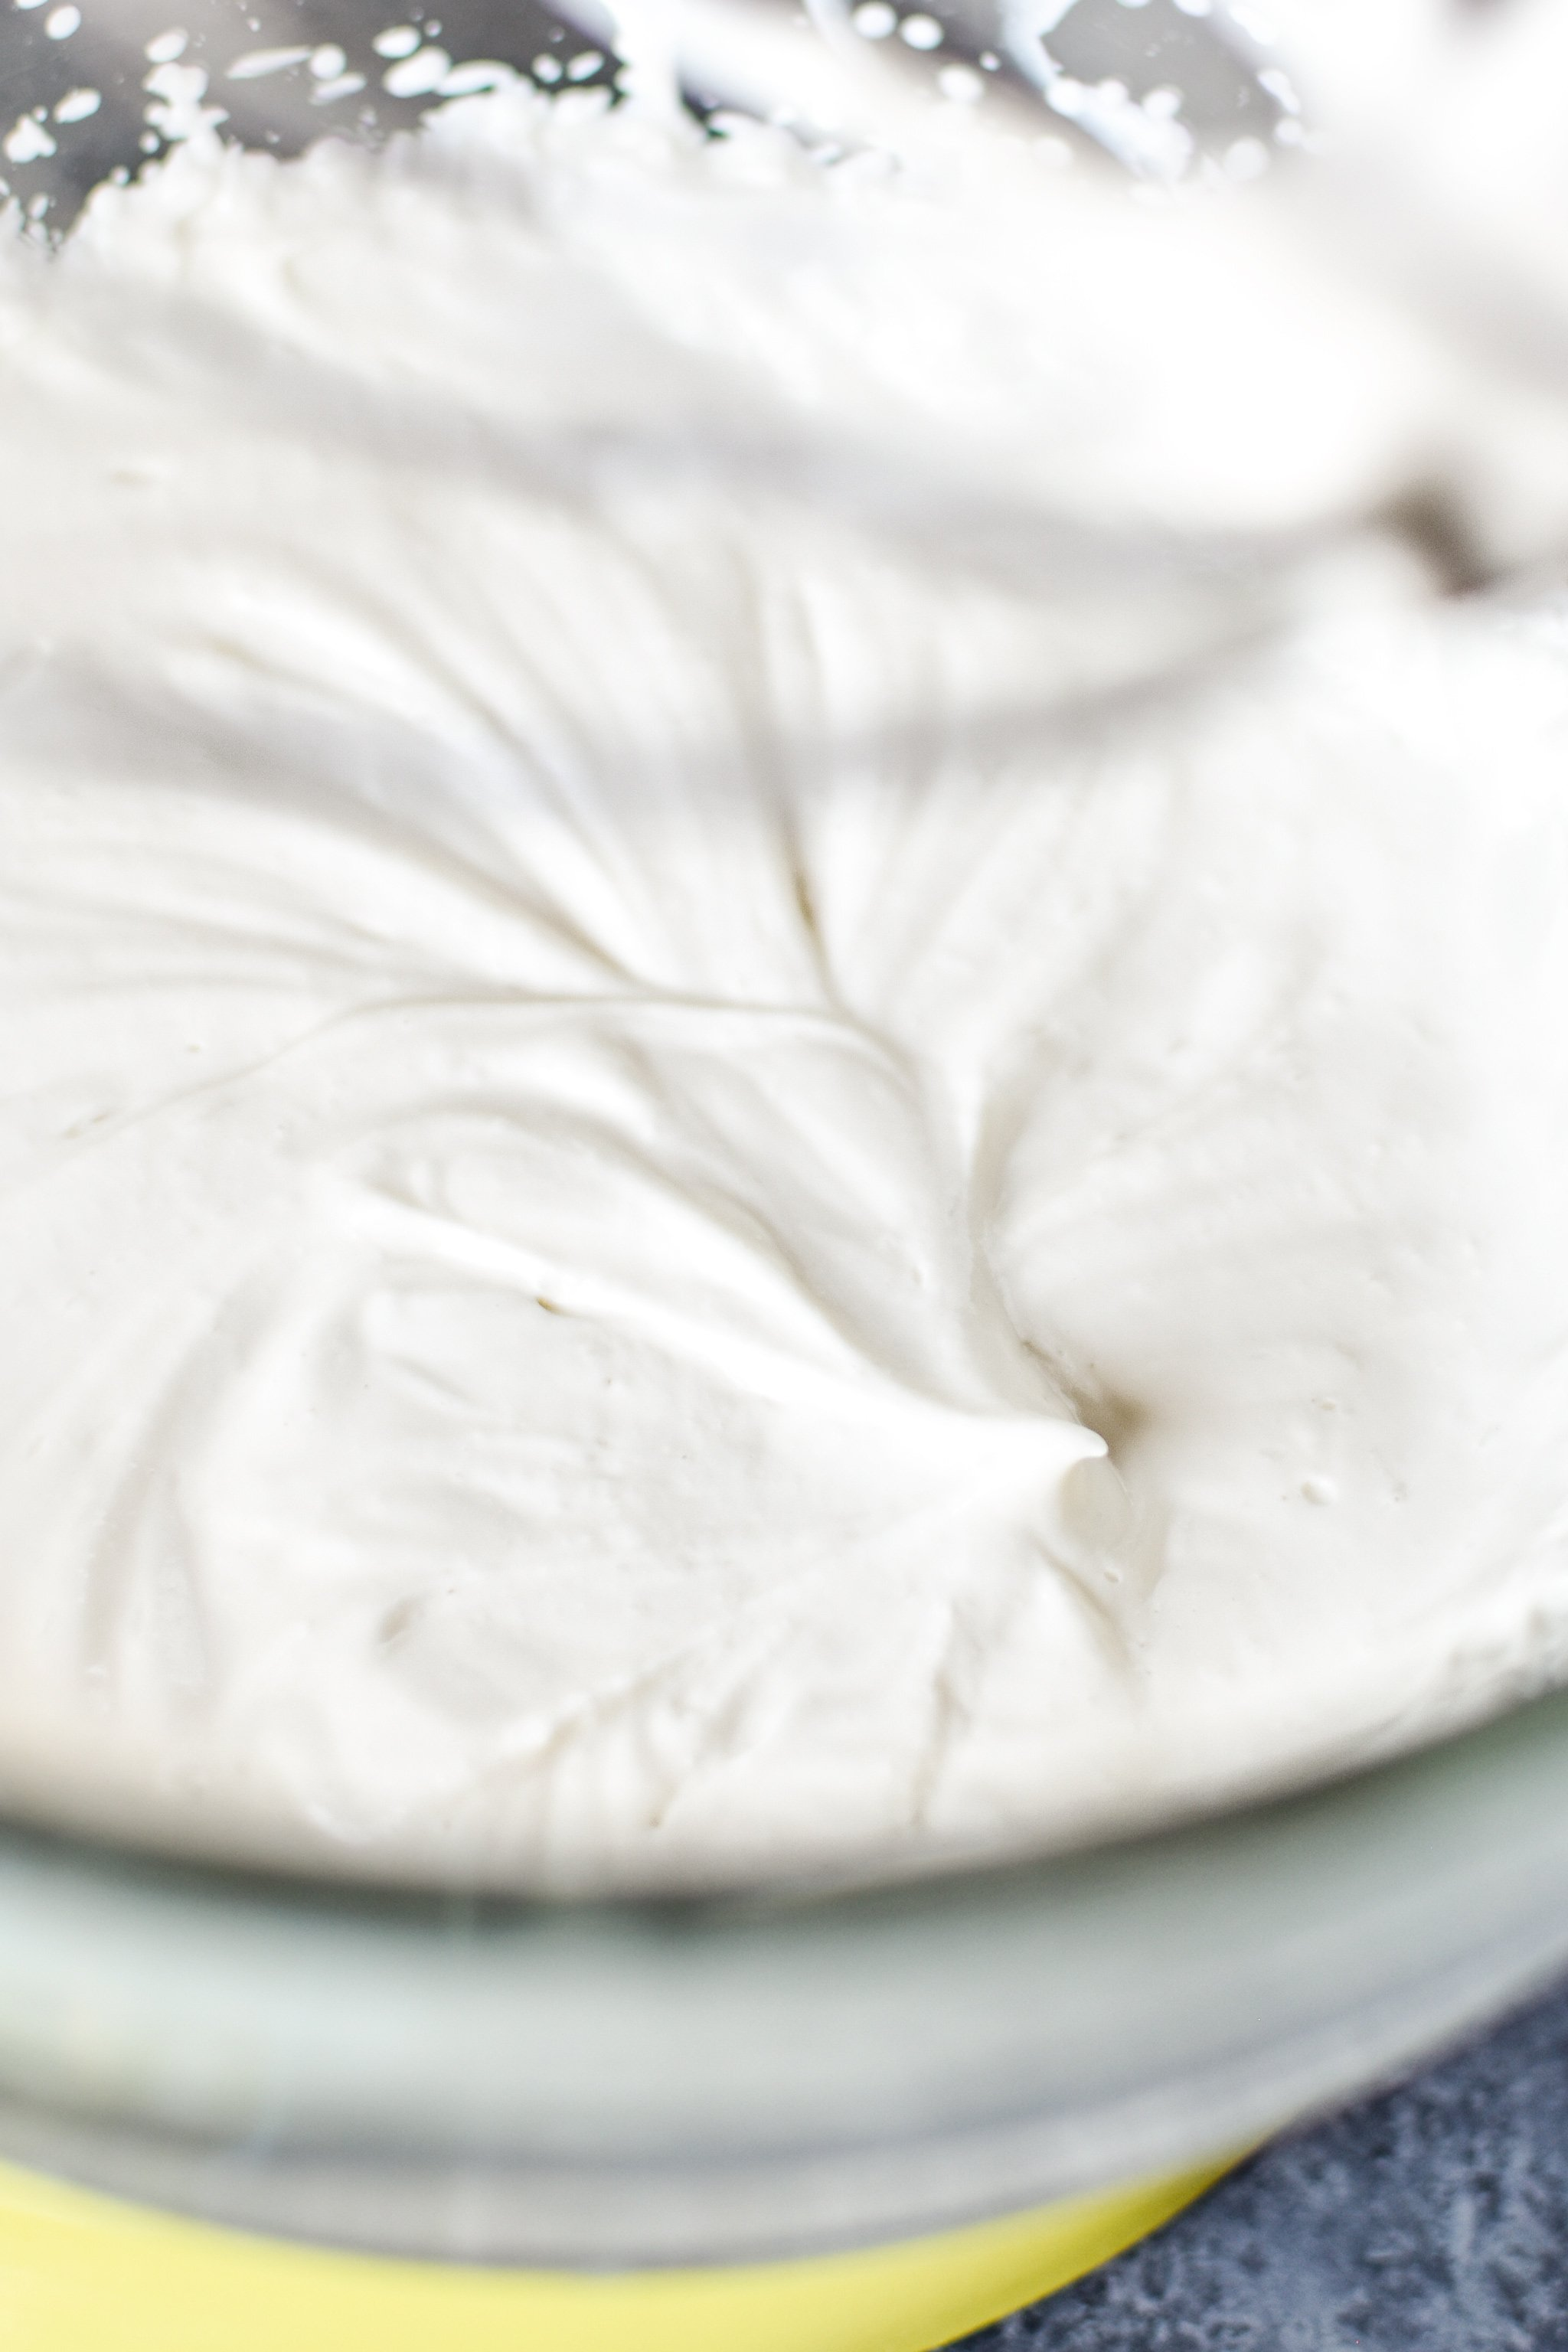 You want stiff-ish peaks when you make whipped Greek yogurt.